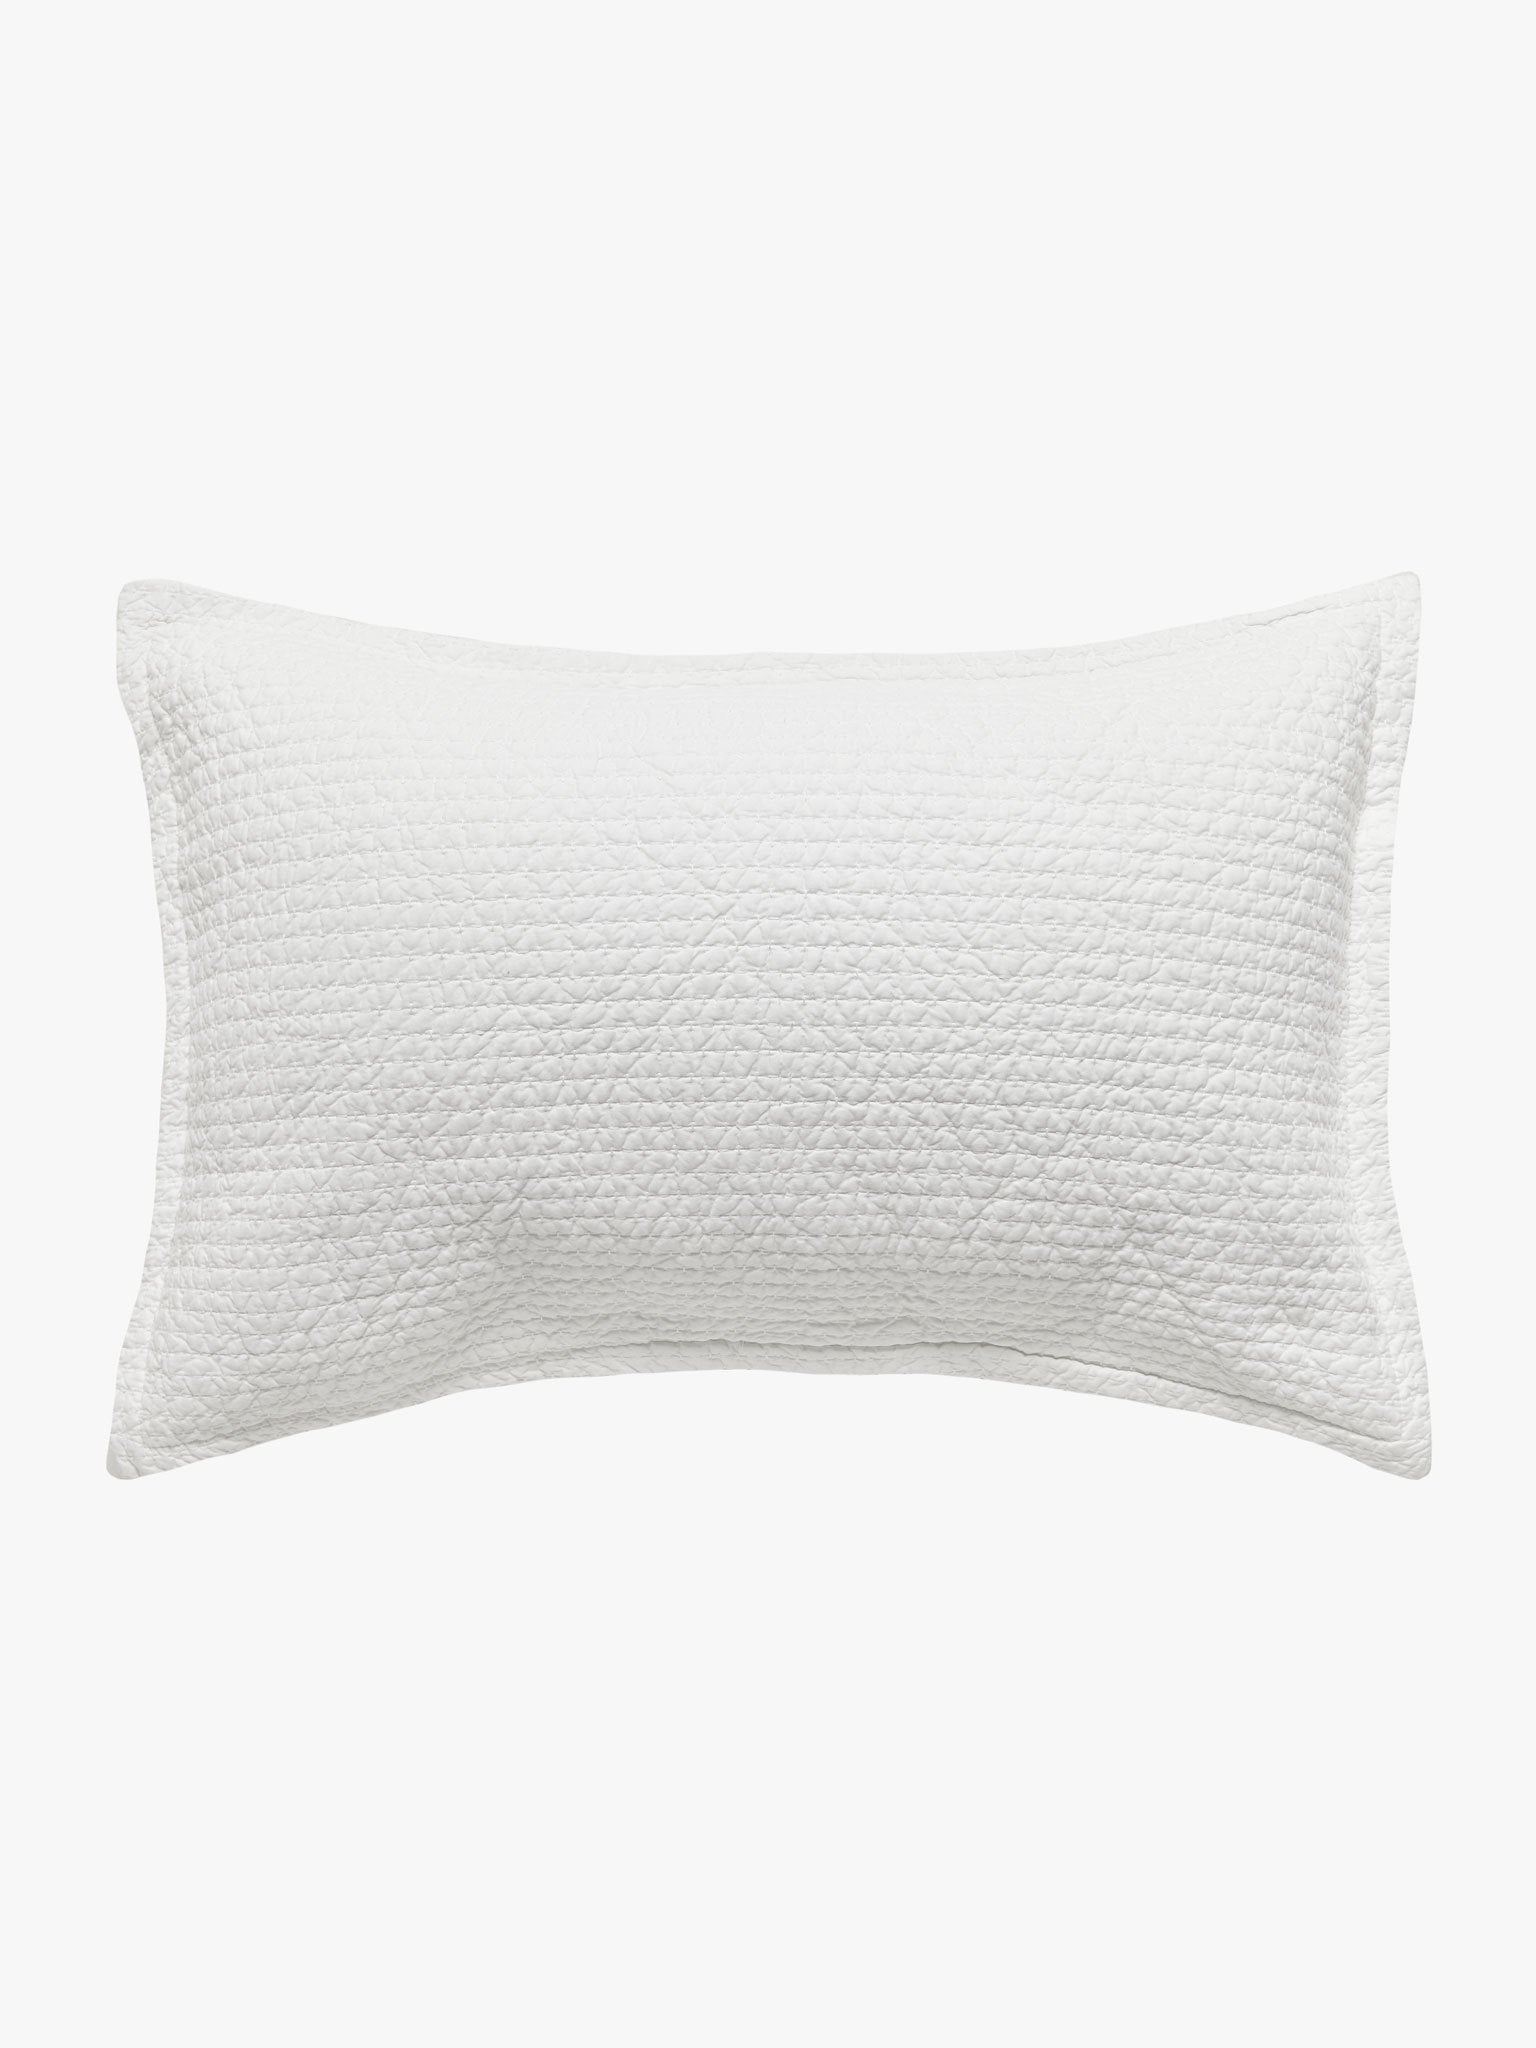 Aspen White Quilted Pillowcases Quilted Pillowcase L&M Home Standard Pillowcase